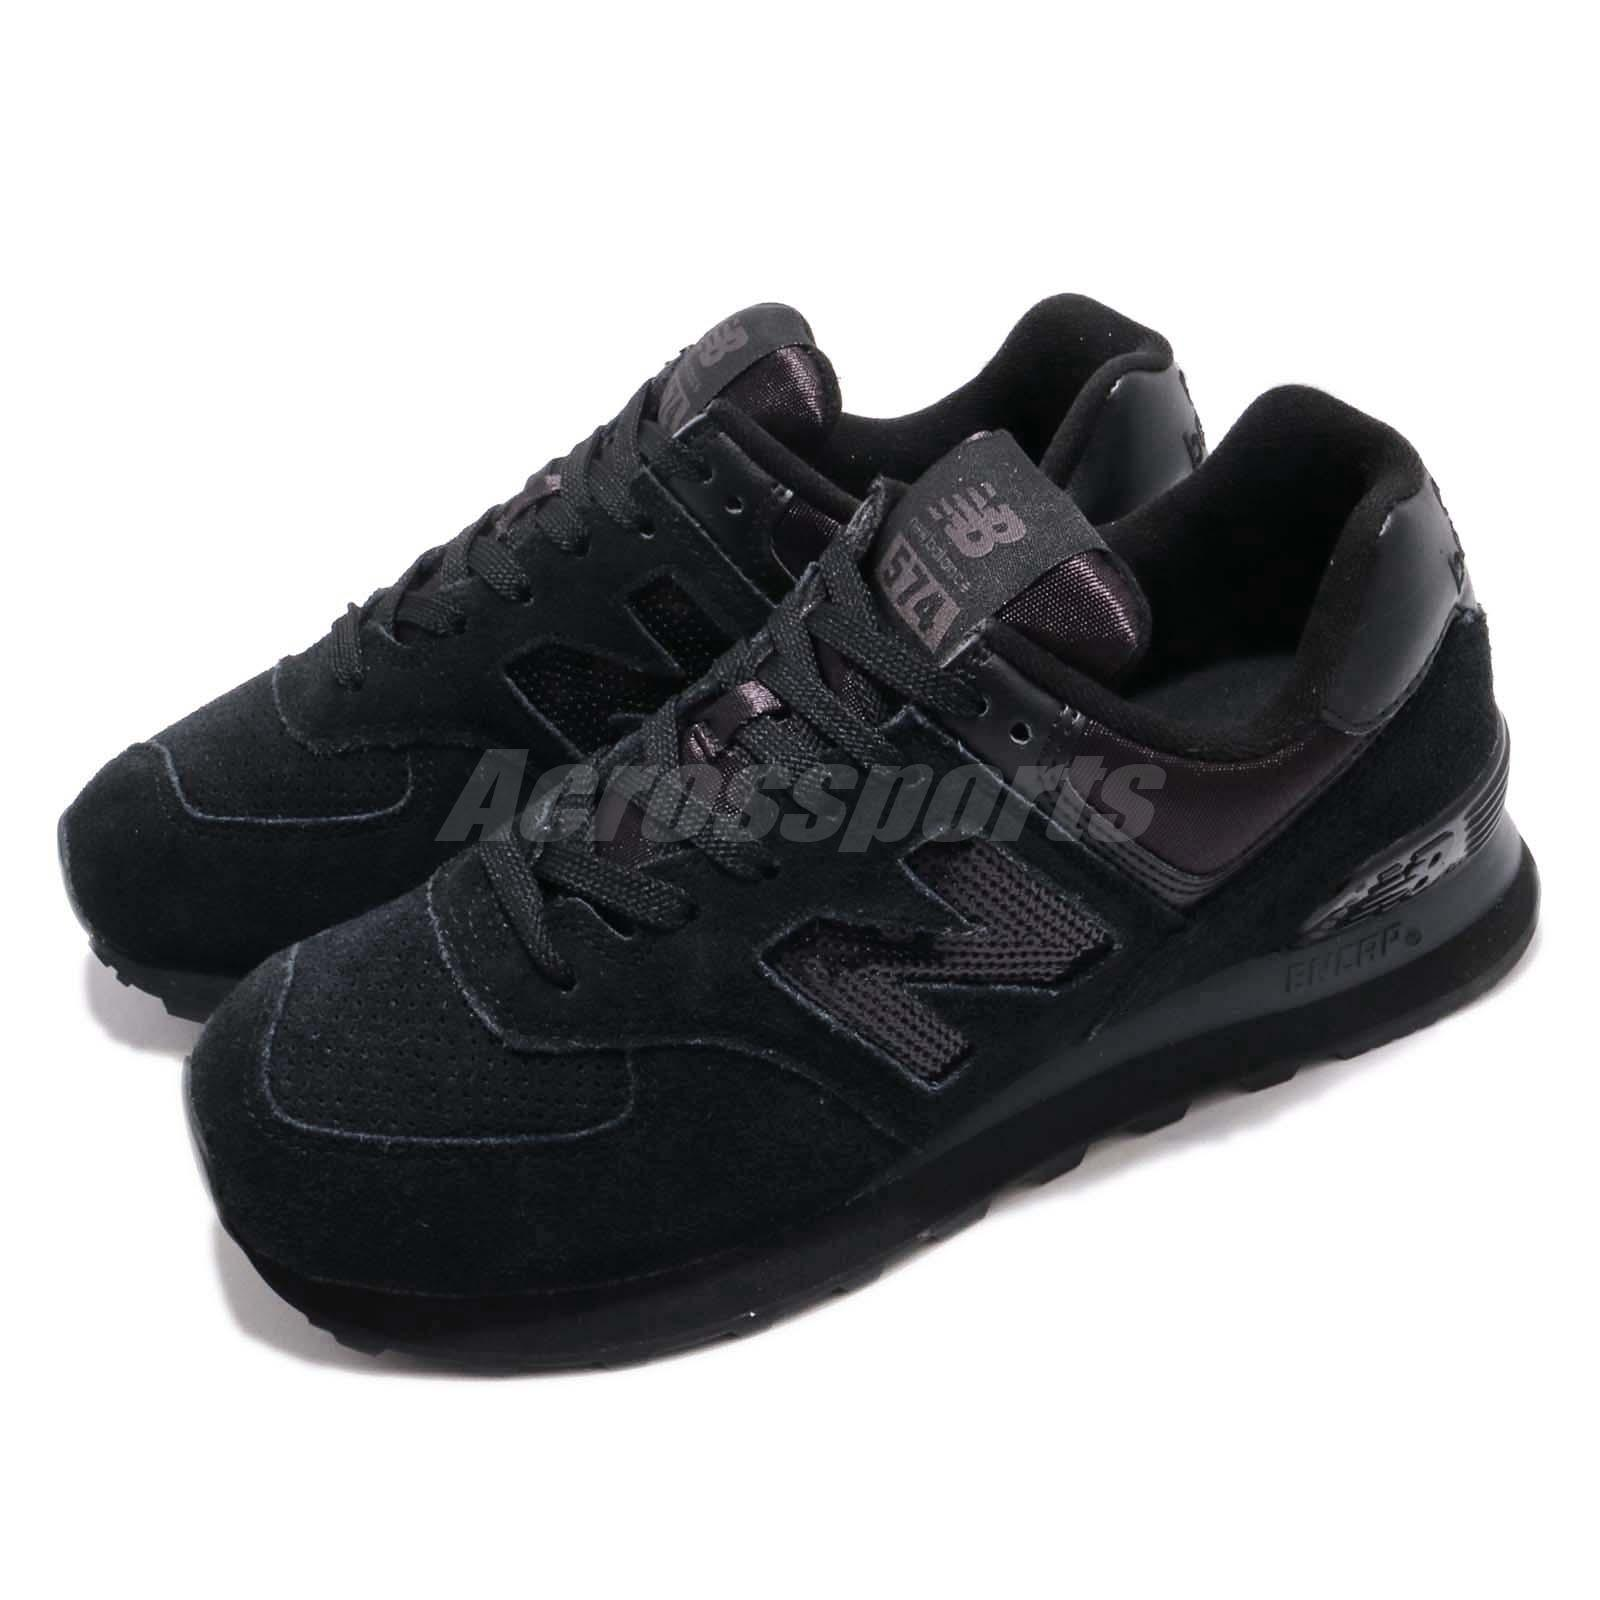 brand new c079f dc857 Details about New Balance WL574FHA B 574 Black Women Running Casual Shoes  Sneakers WL574FHAB